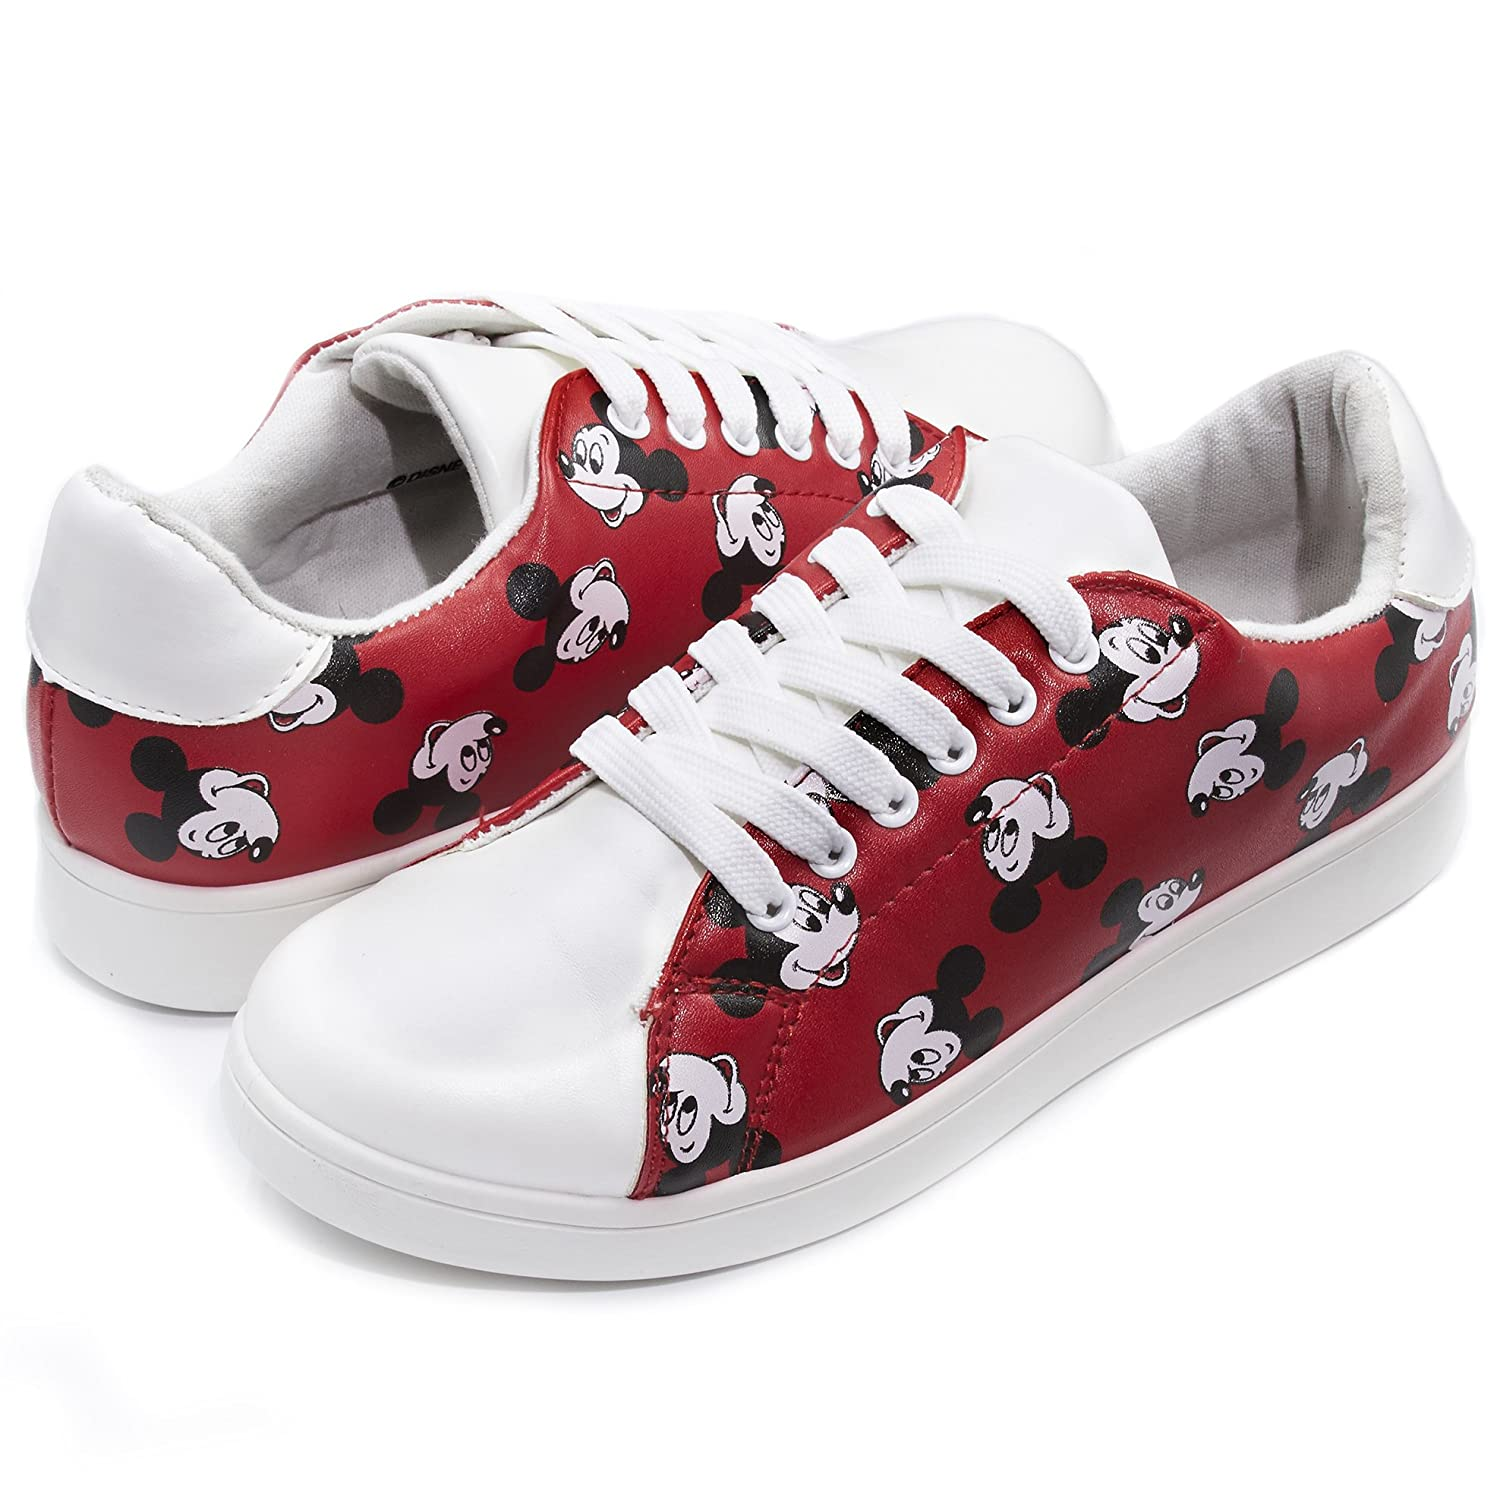 Disney Junior Teen Girls Low Top Mickey and Minnie Fashion Sneakers (See More Designs and Sizes) B074CJBP5R 6 B(M) US|Red